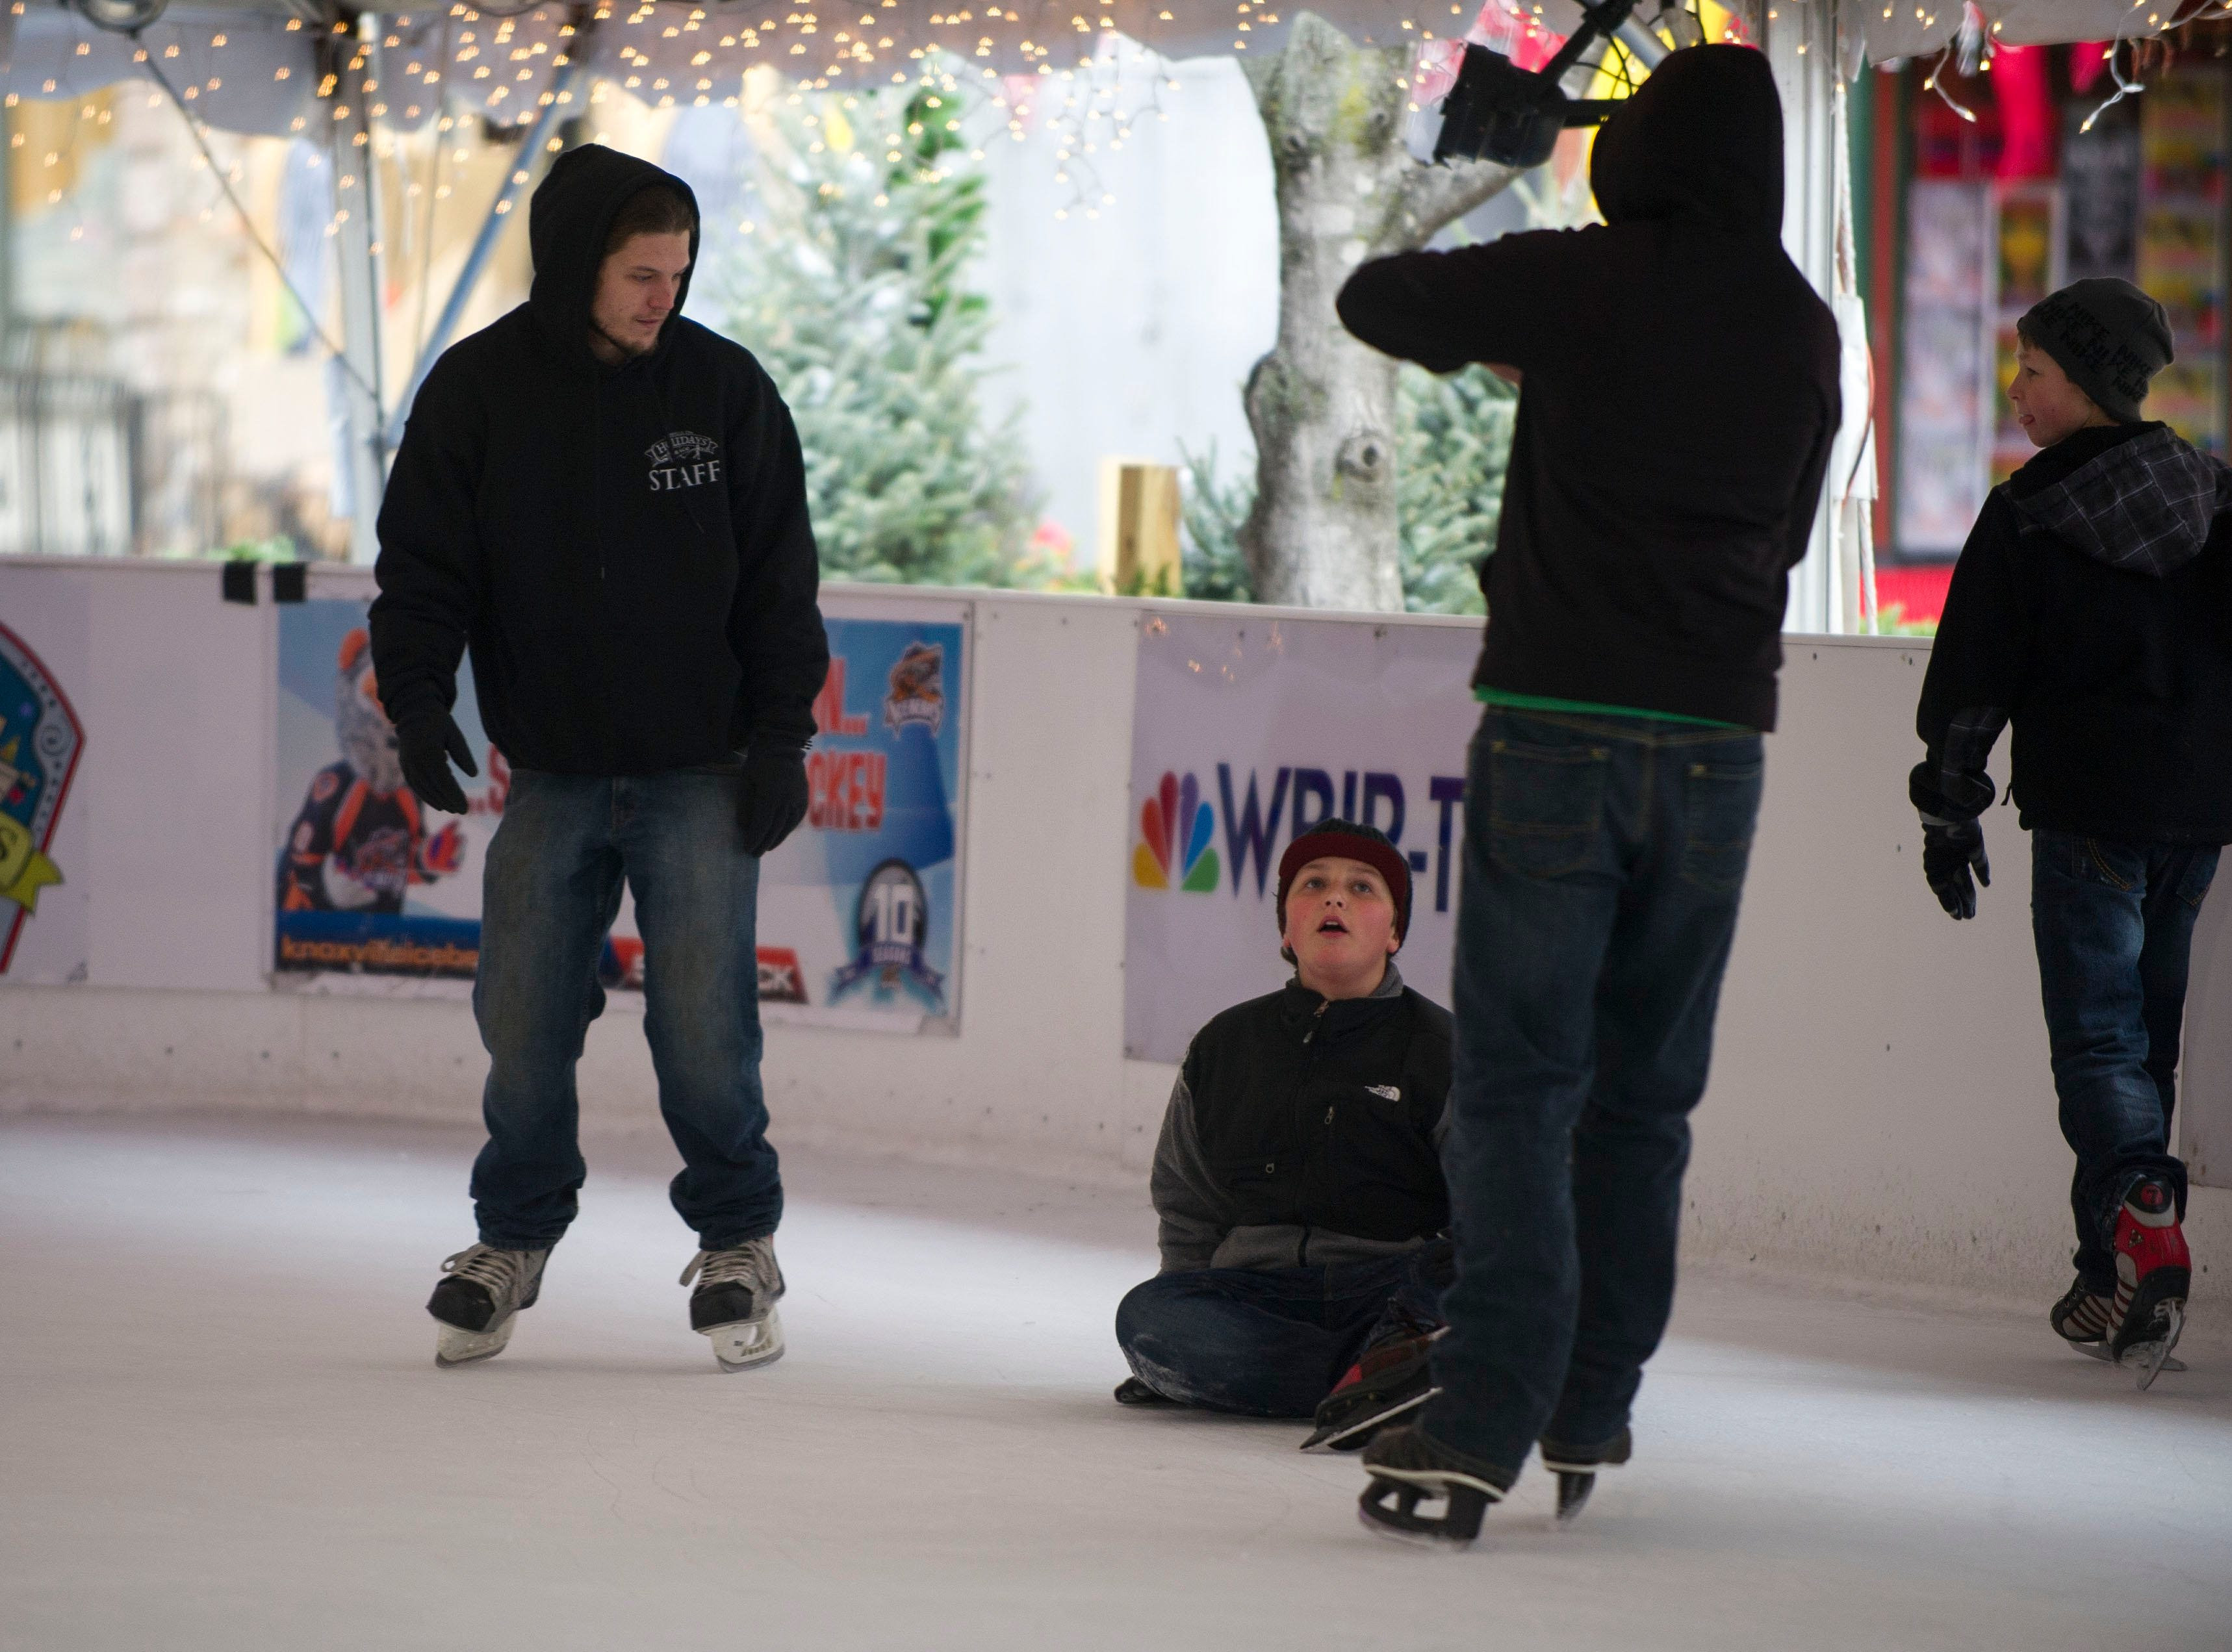 Zach Qualls looks up from the ice as his friends skate by at the outdoor ice skating rink on Market Square in downtown Knoxville Tuesday December 24, 2013.